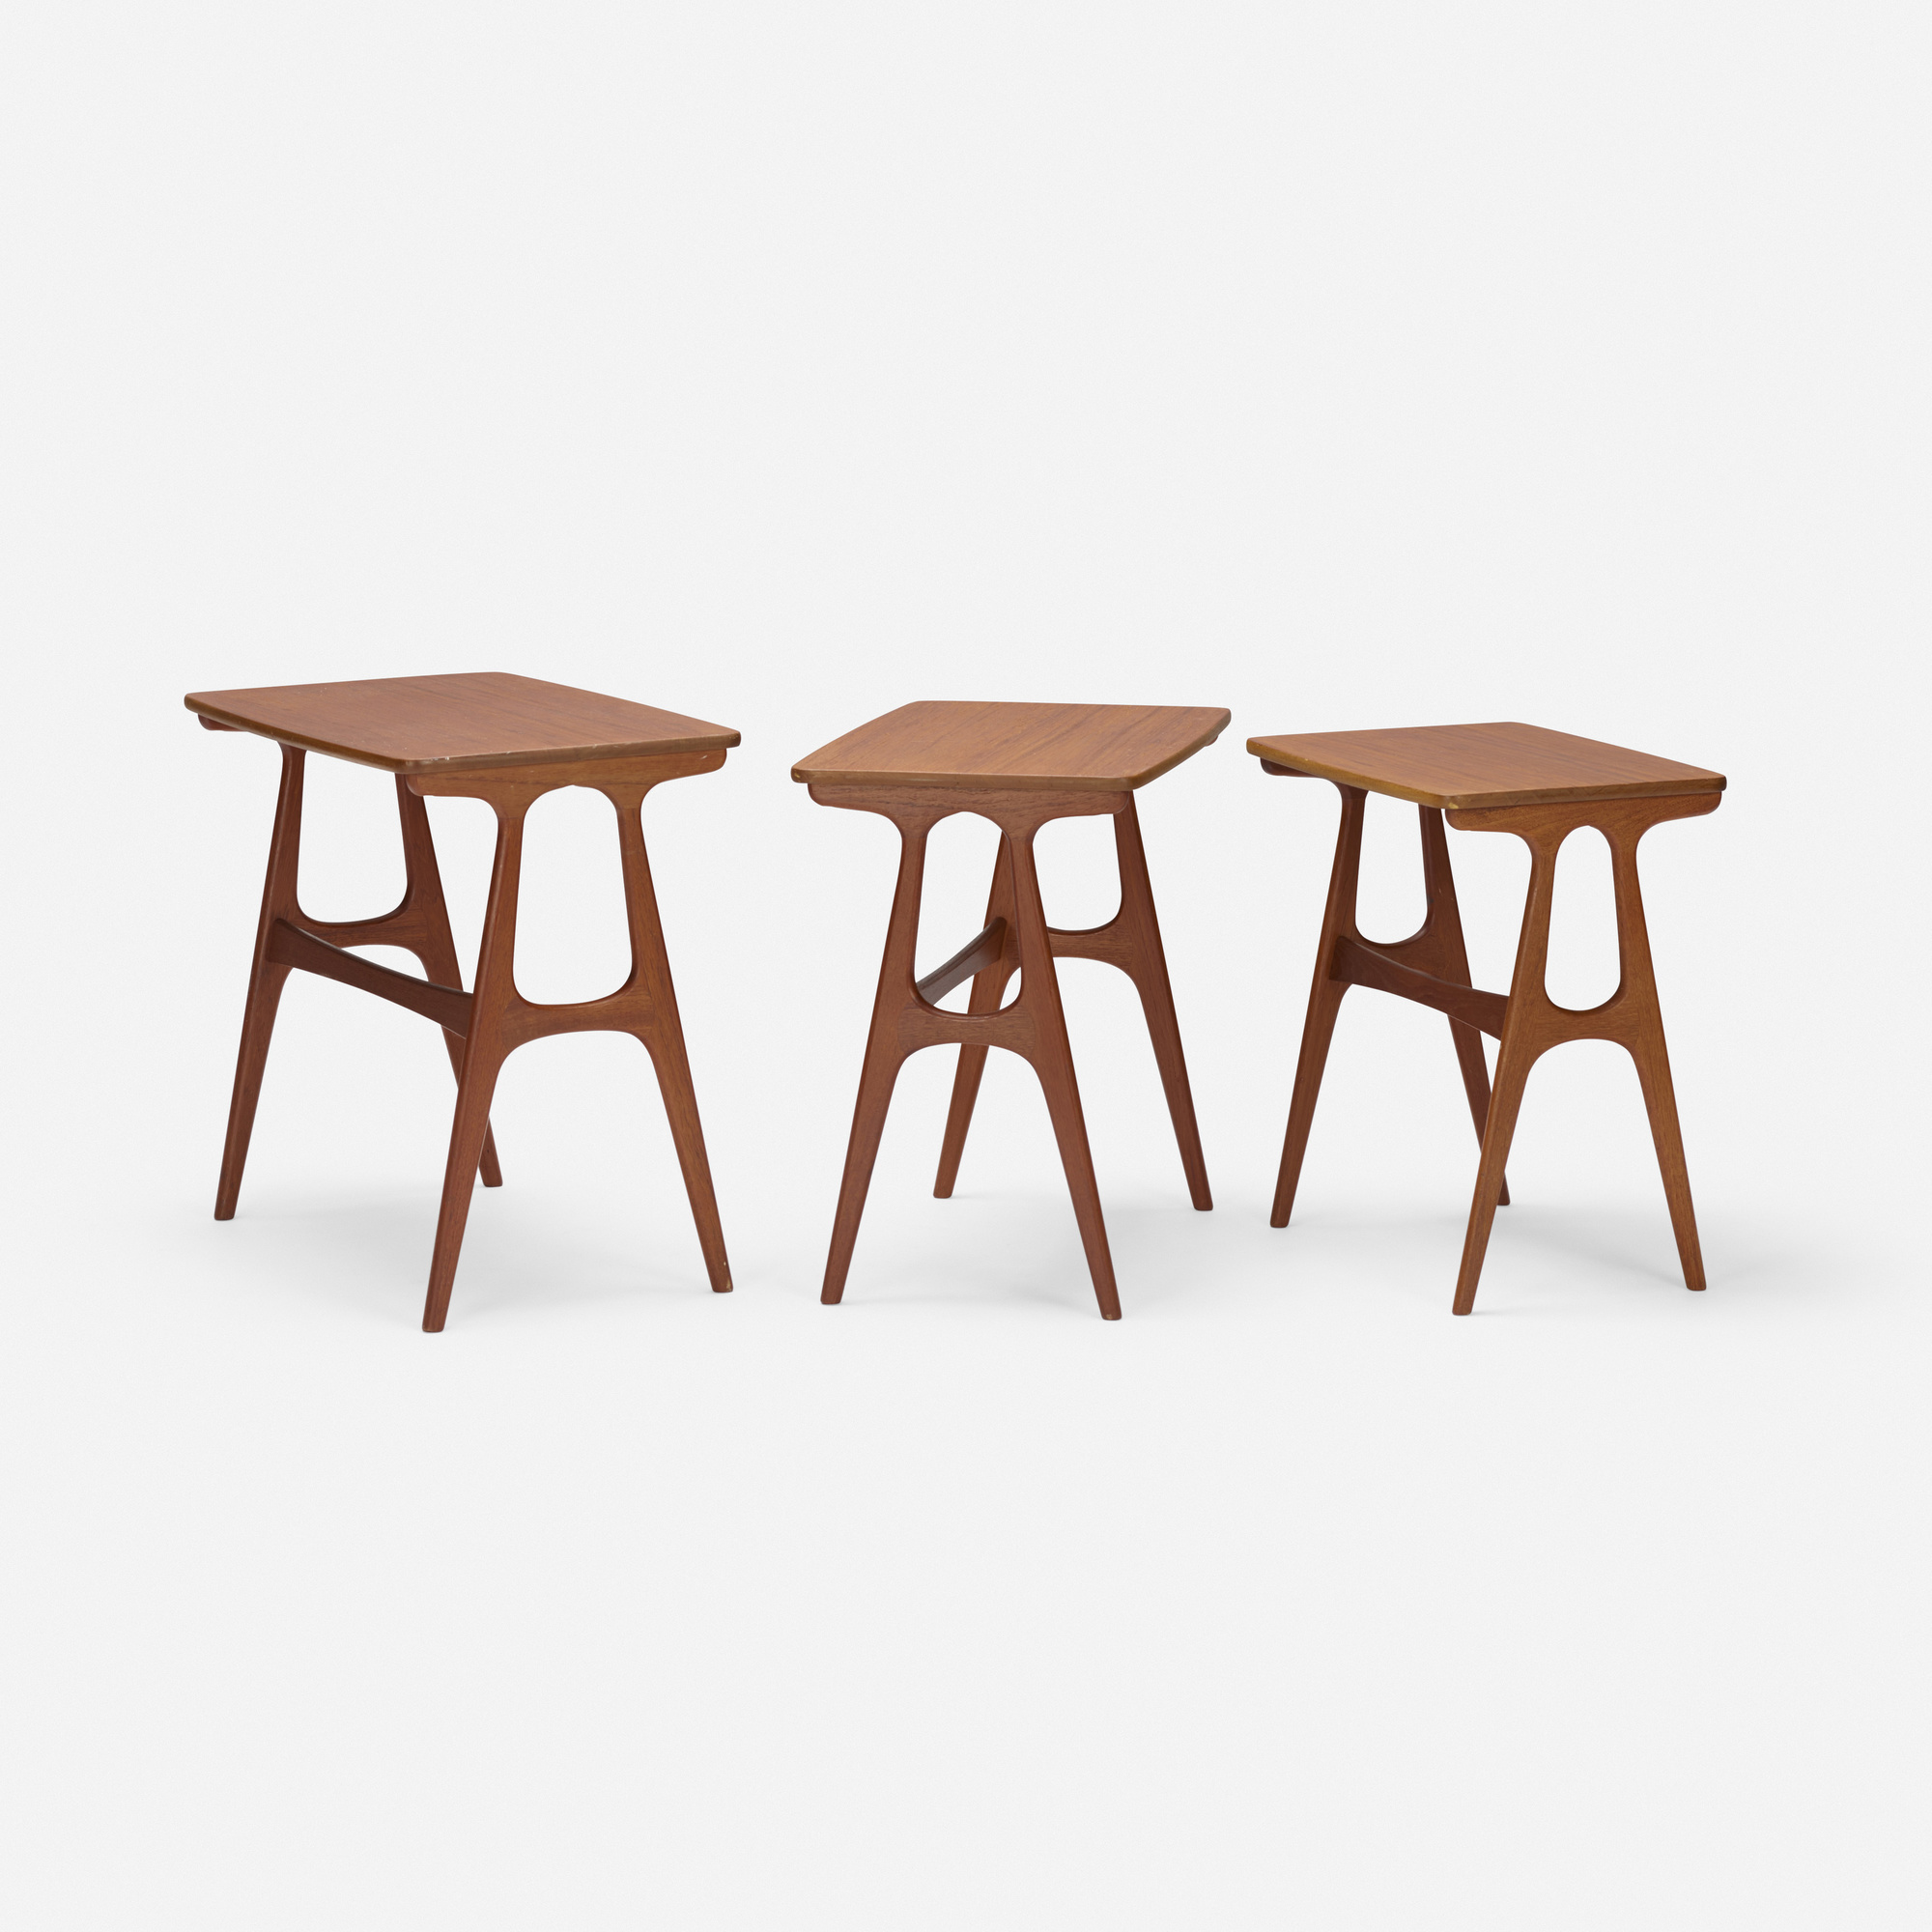 147: Erling Torvits / nesting tables, set of three (2 of 2)